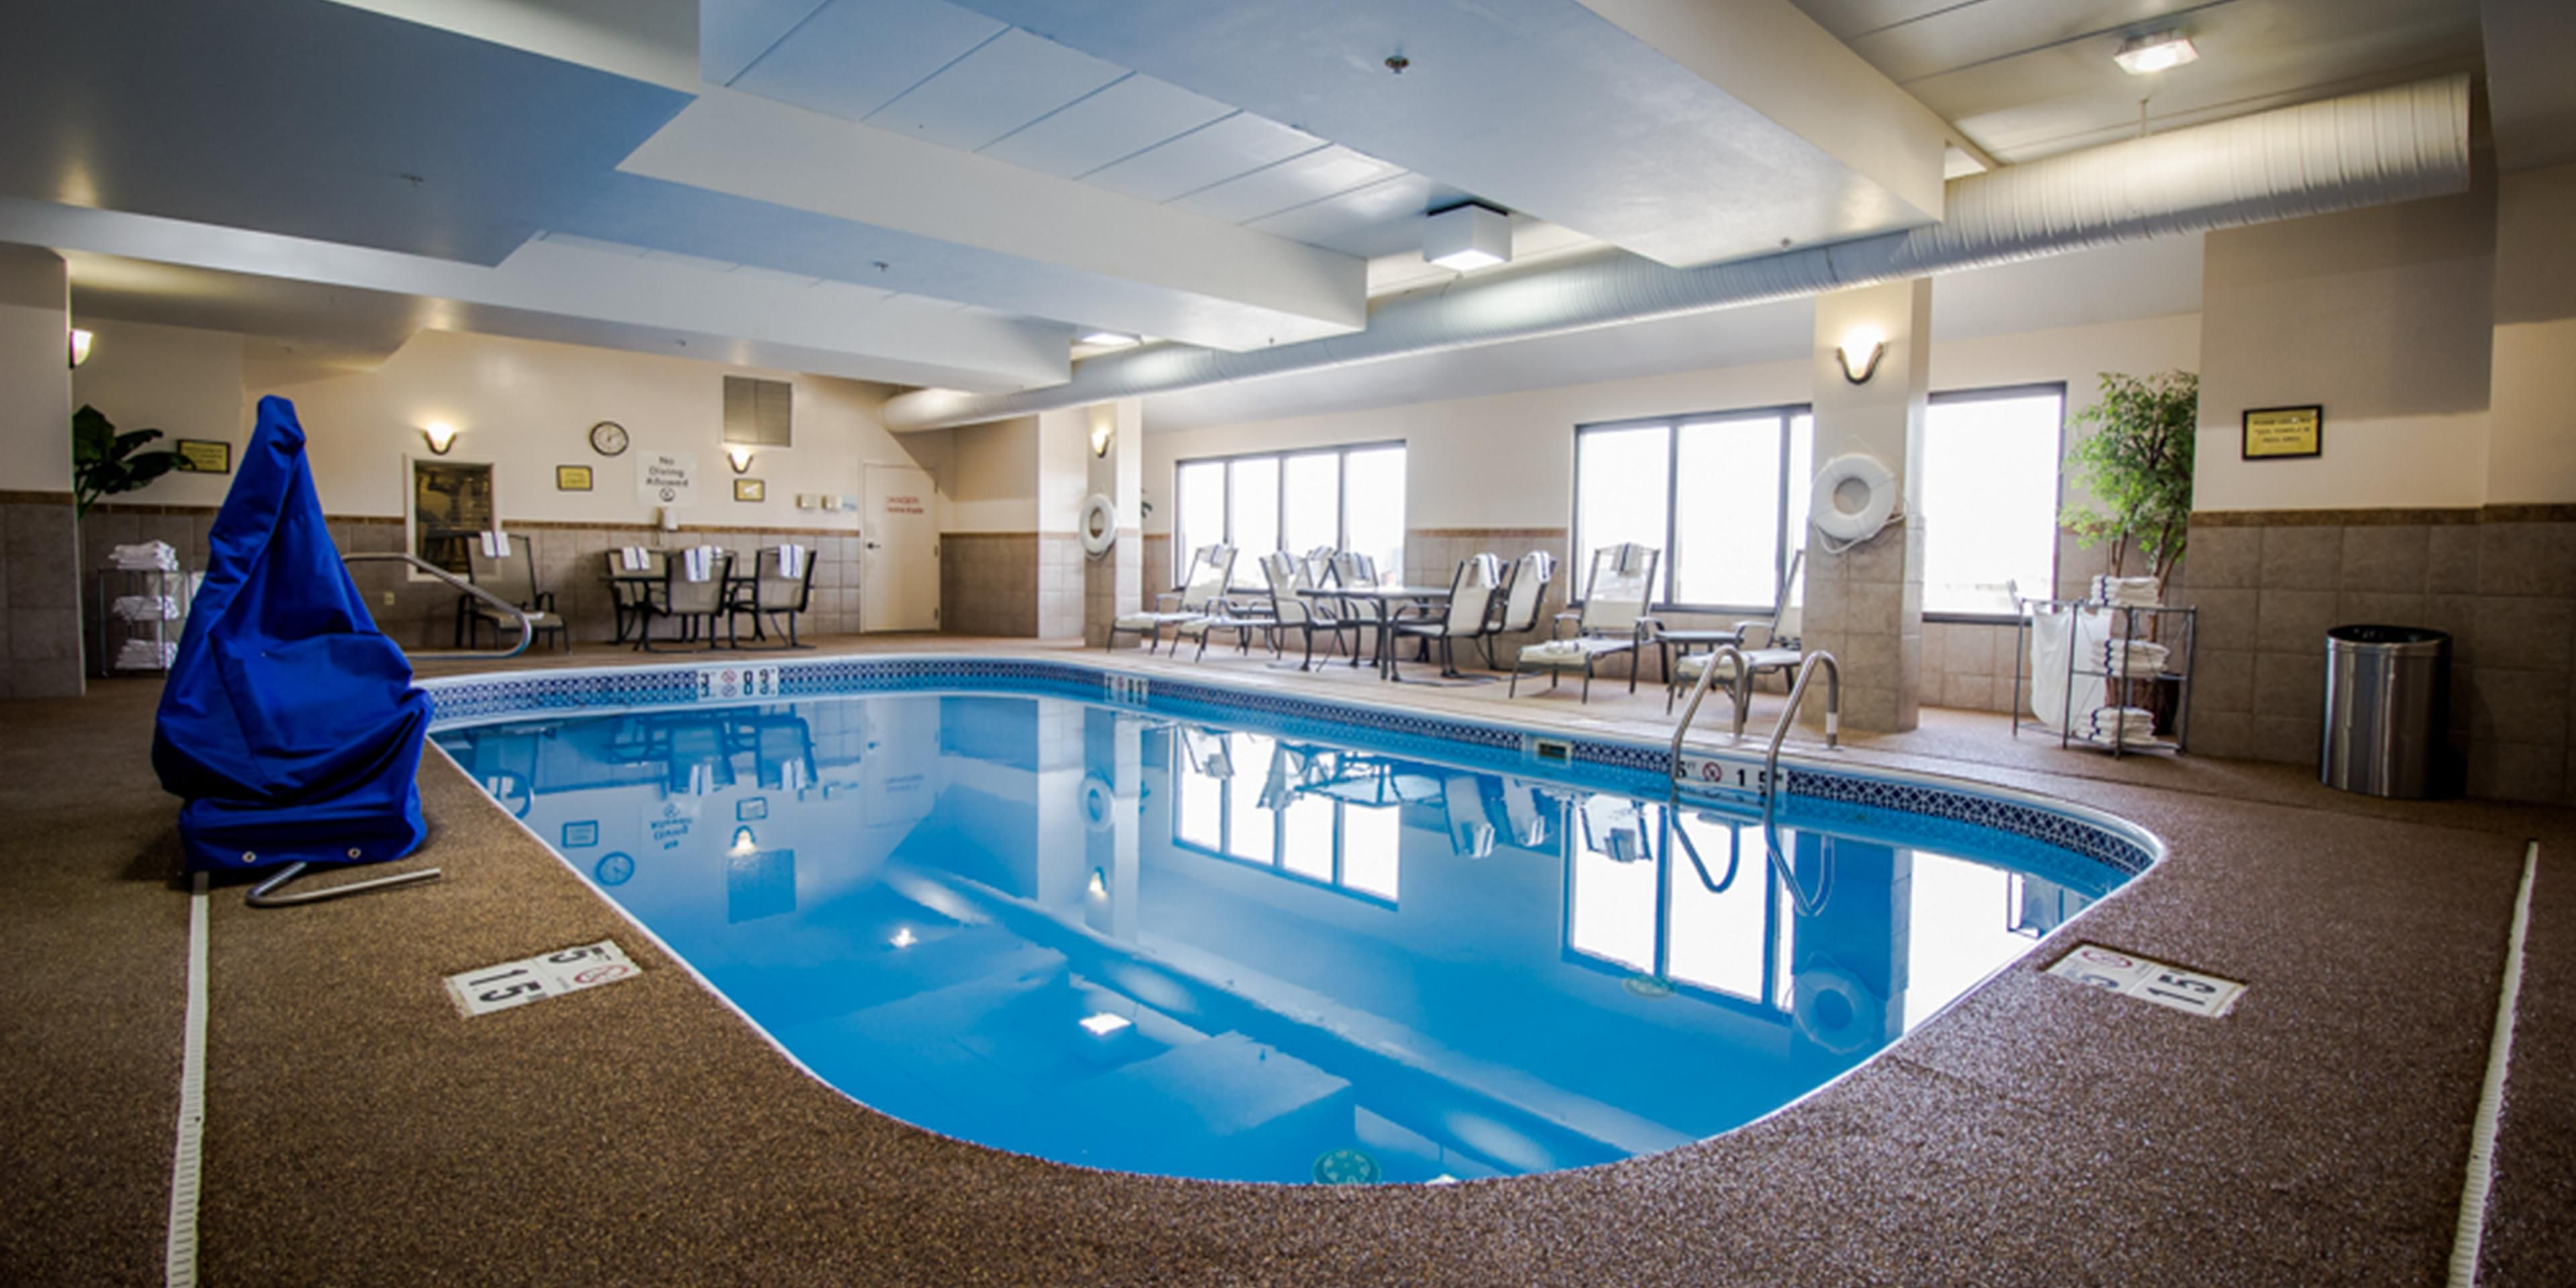 Hotel In Ohio With Swimming Pool In Room 2018 World 39 S Best Hotels